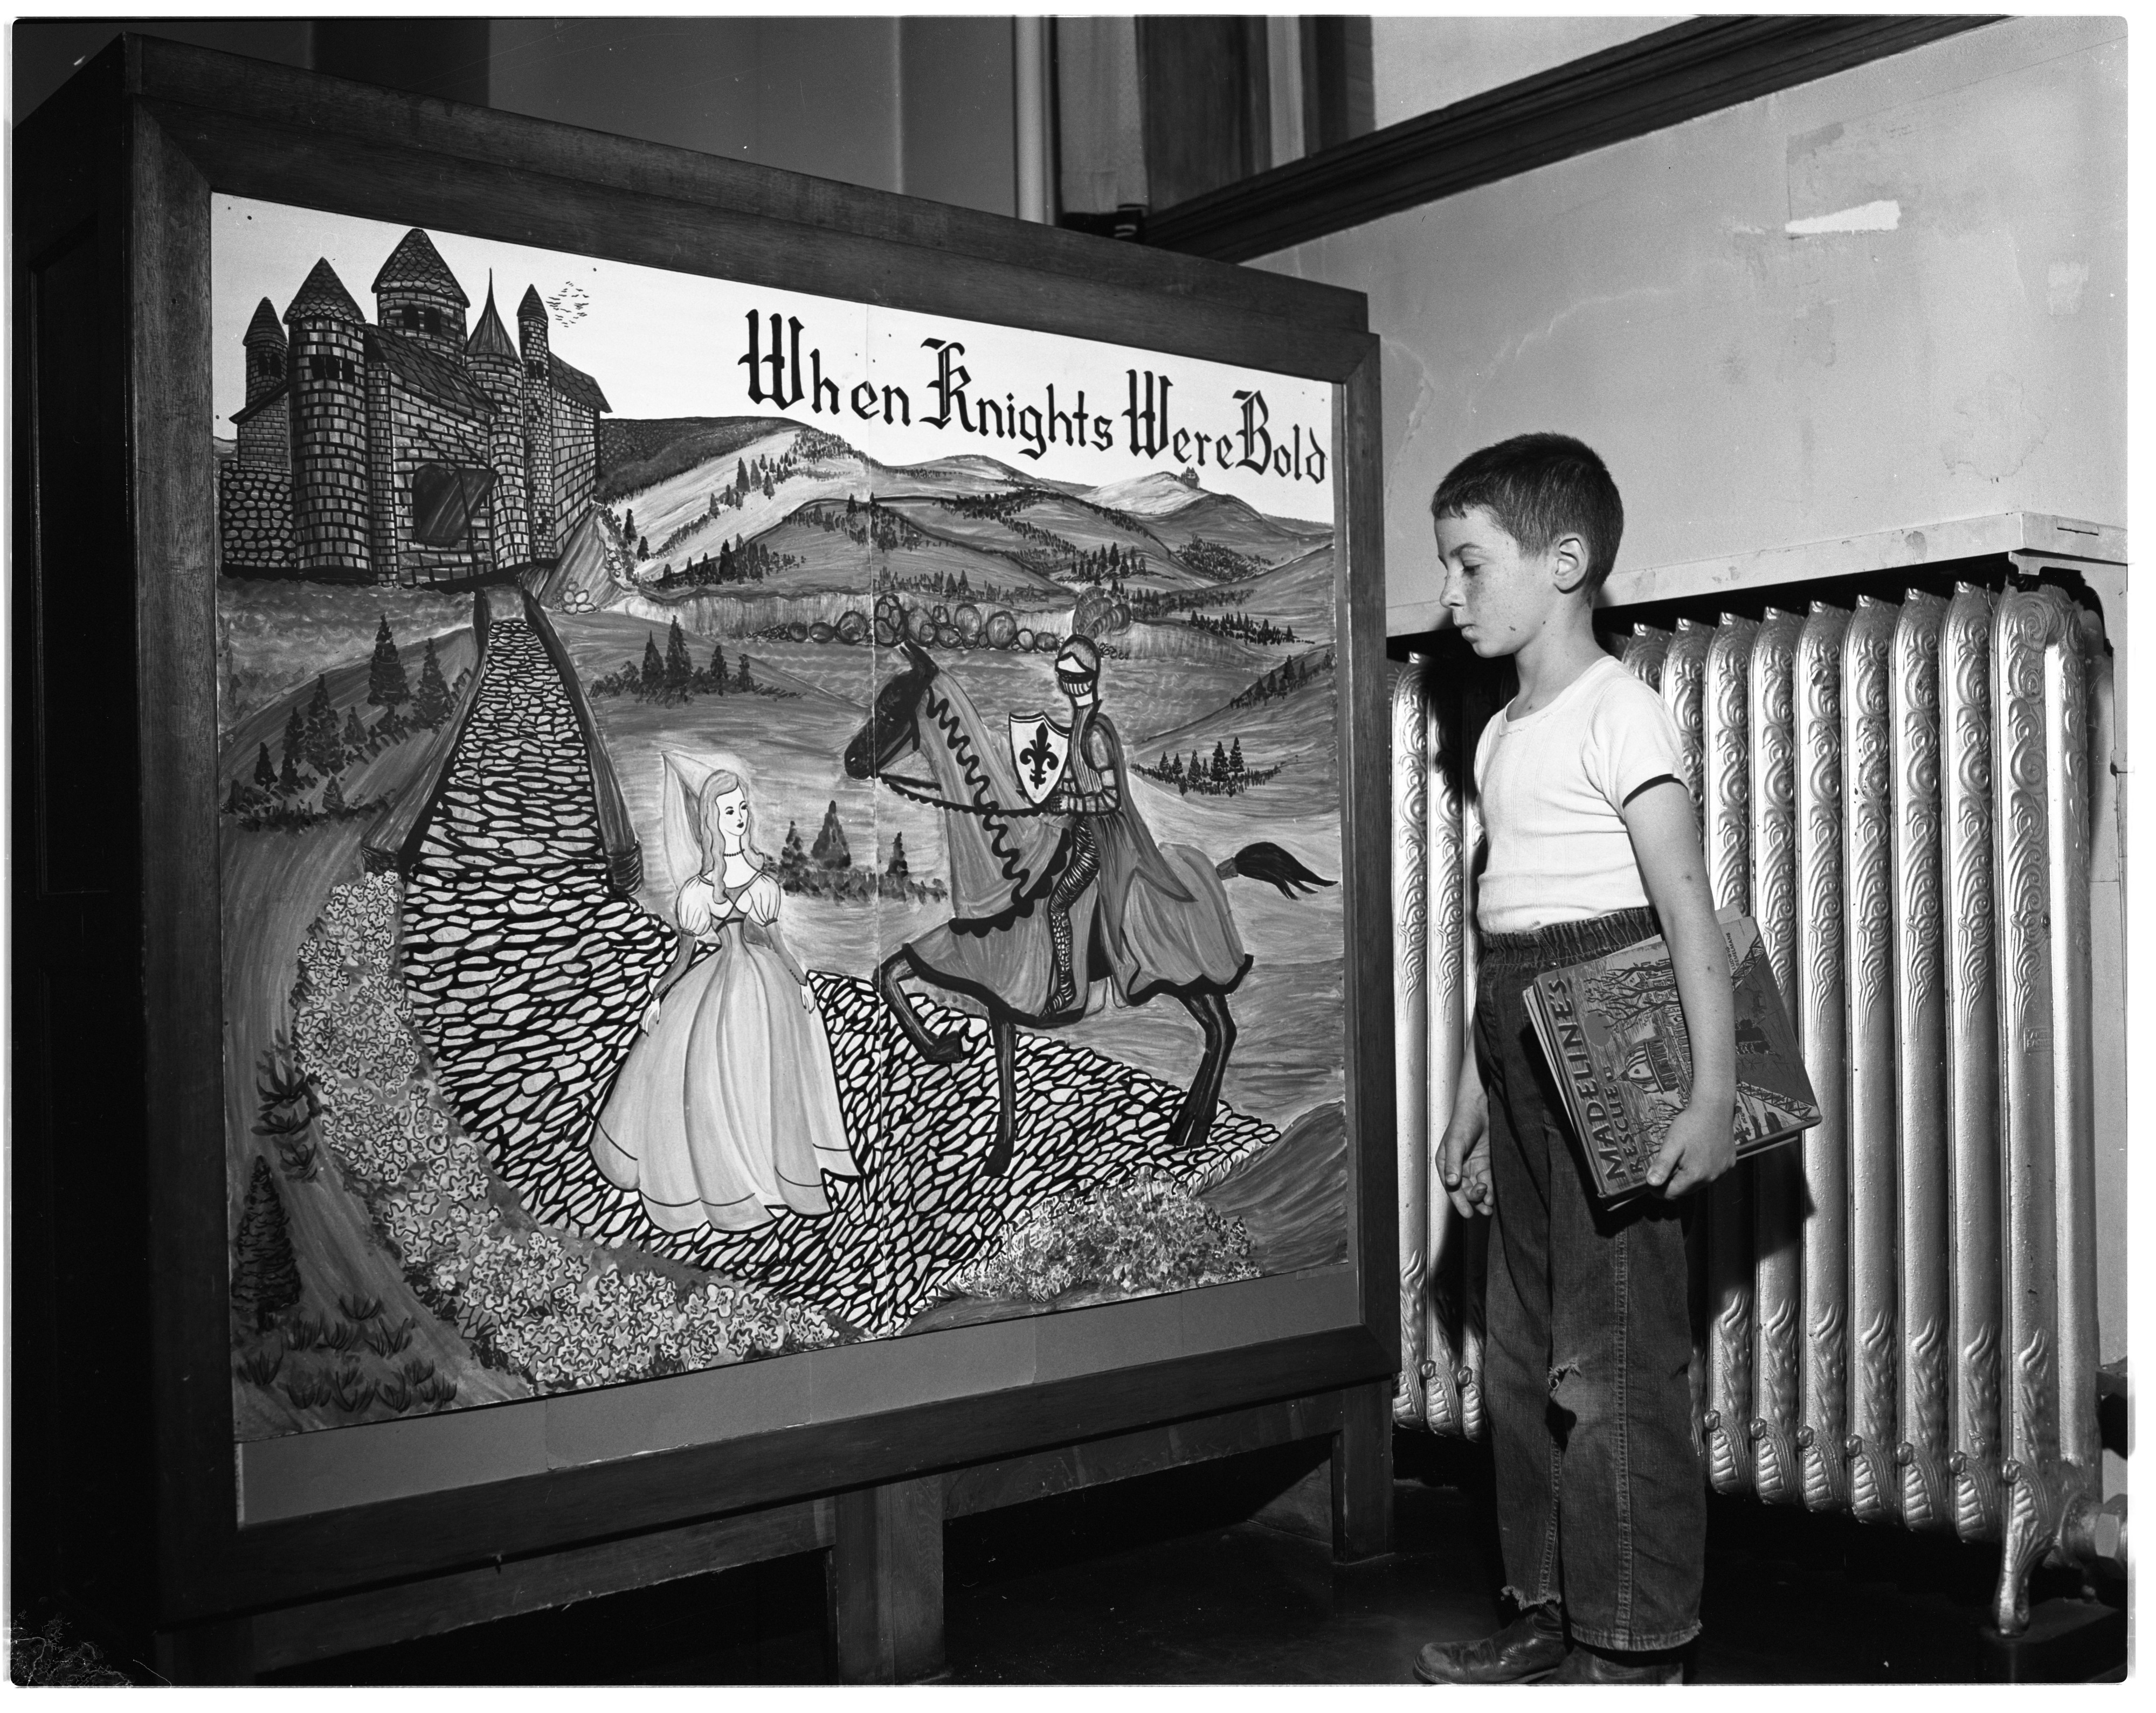 When Knights Were Bold Is Theme of Ann Arbor Public Library's Summer Reading Club, June 1956 image